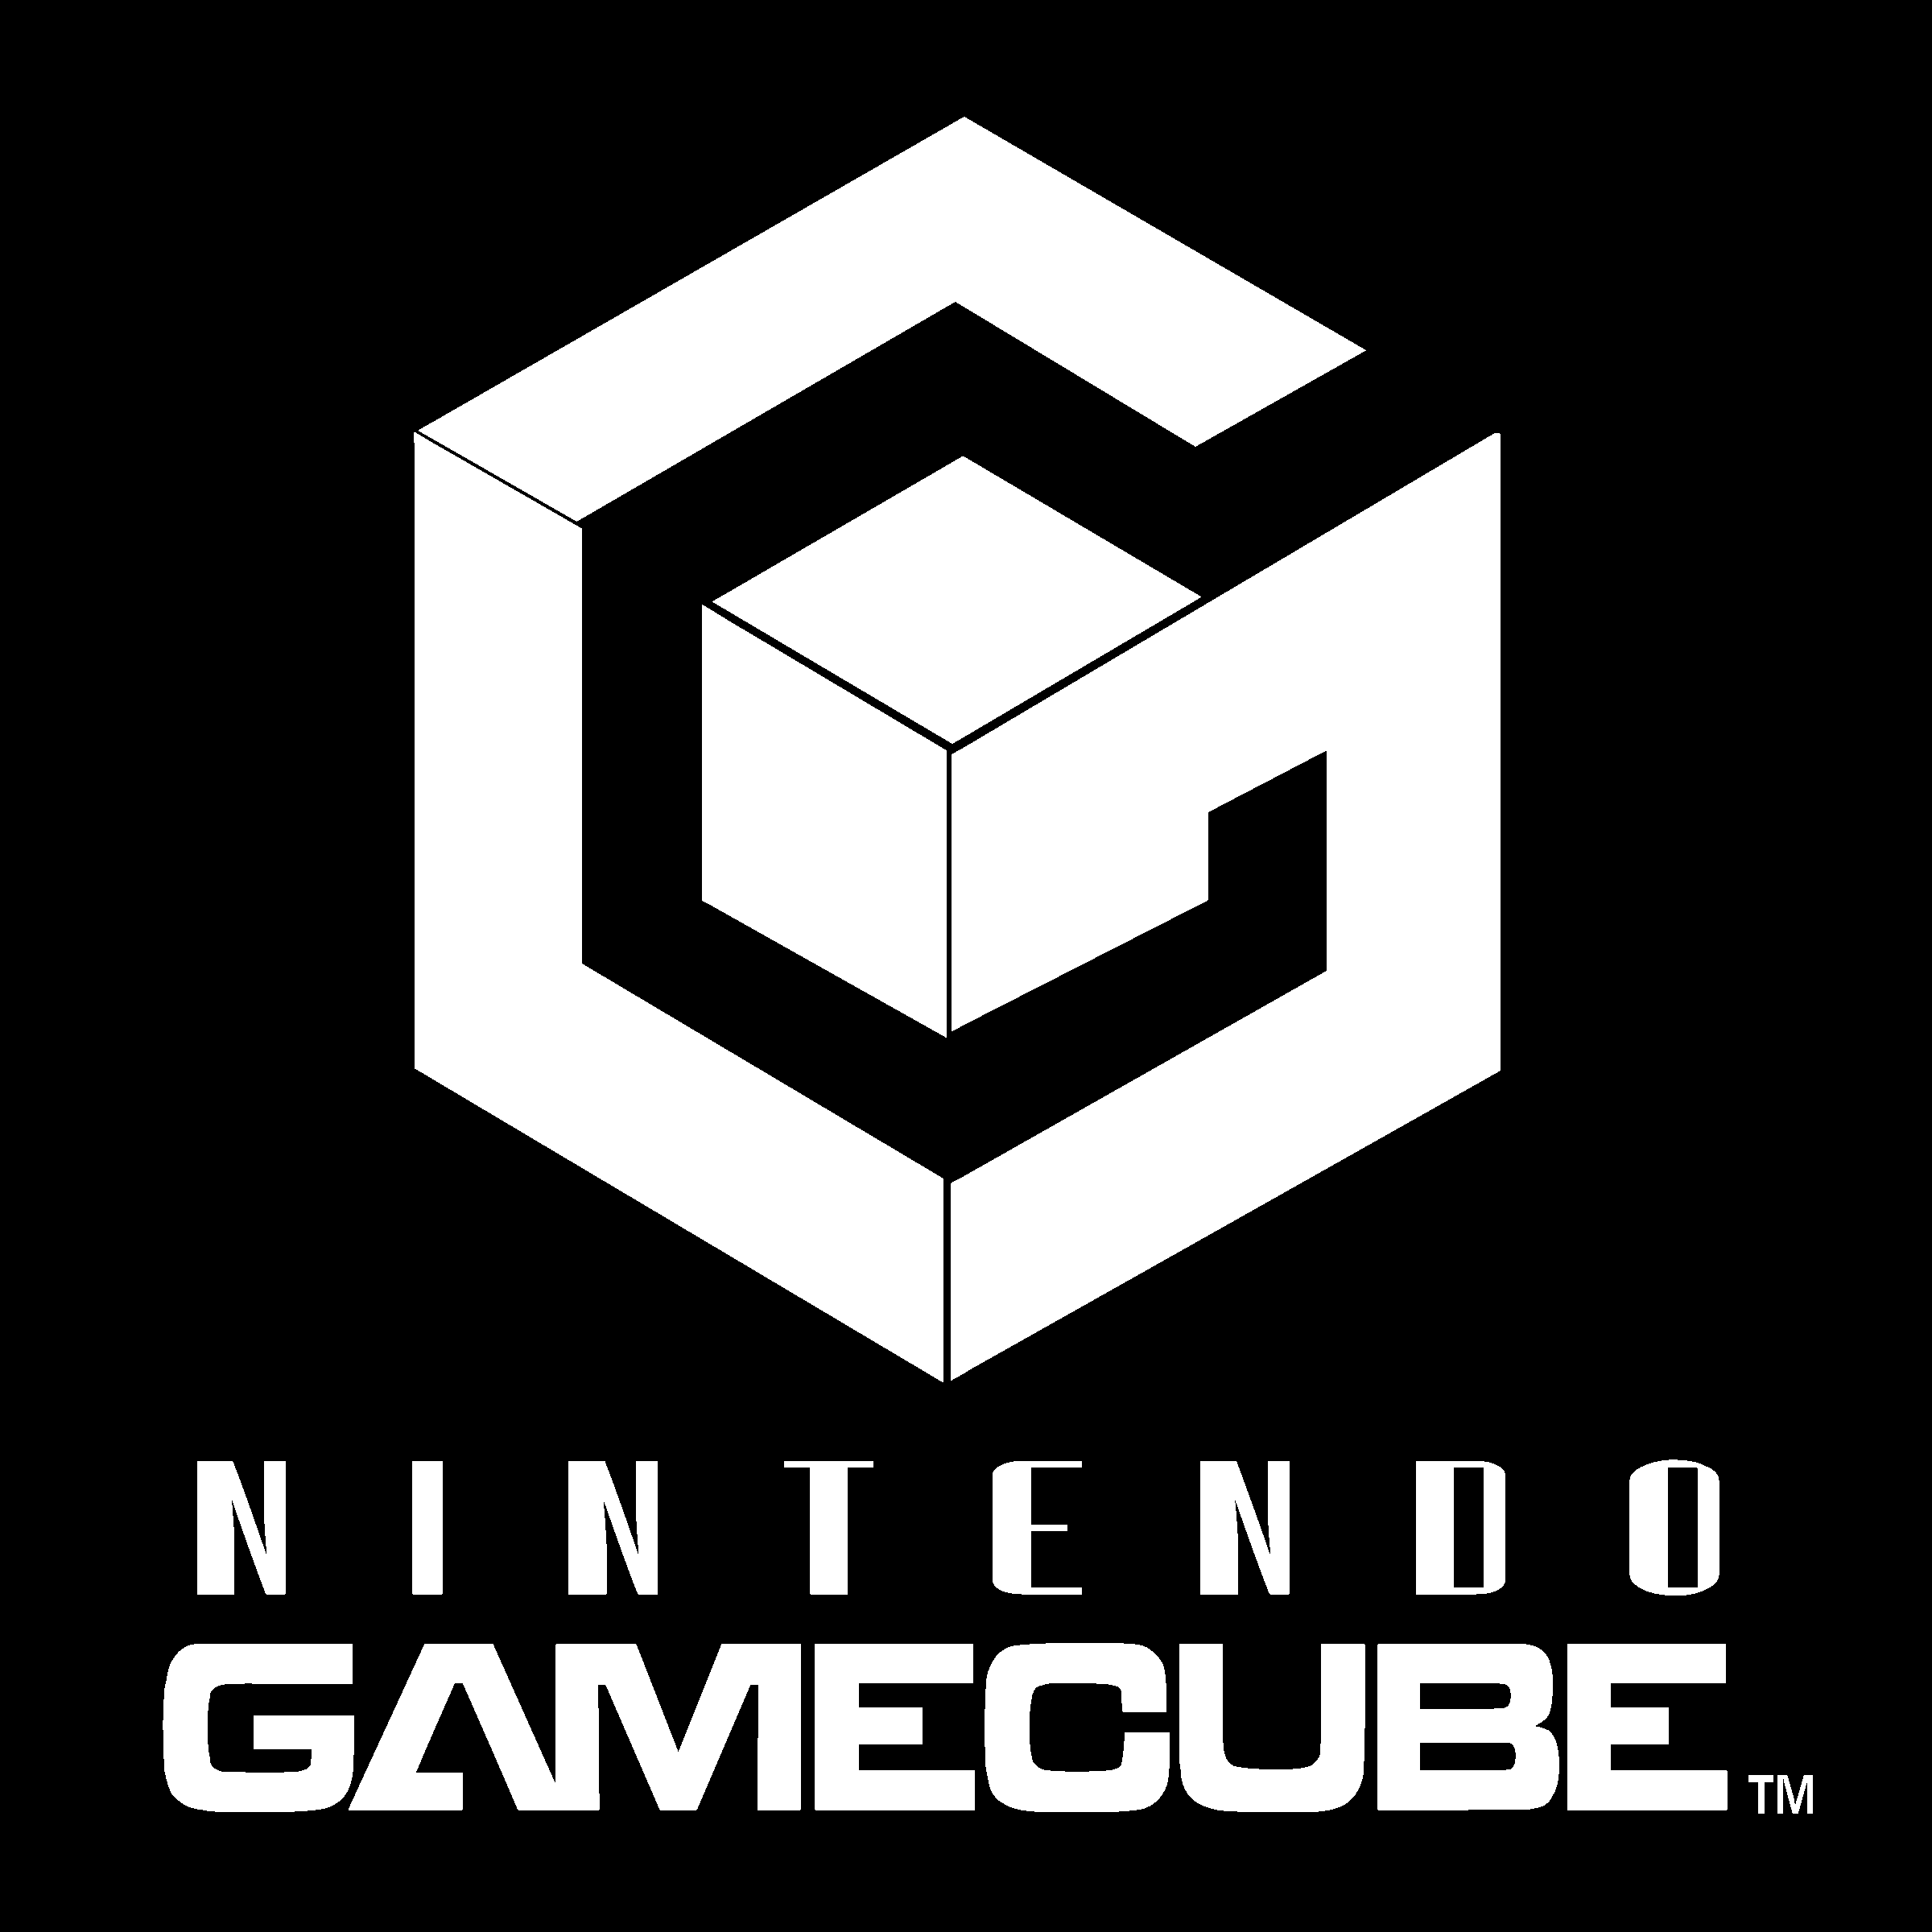 Nintendo Gamecube Logo Png Transparent Svg Vector Freebie Supply